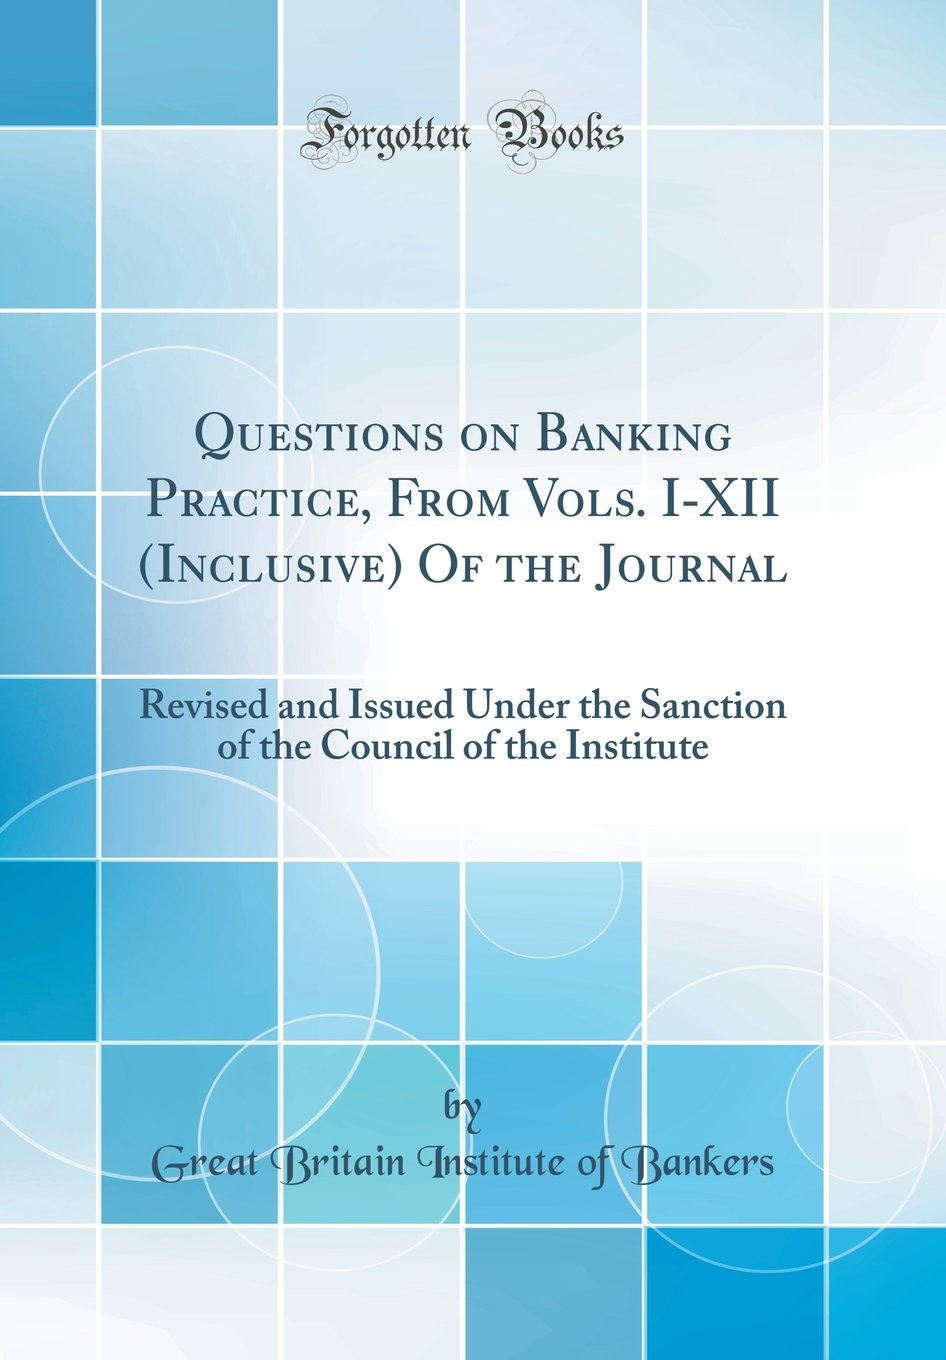 Questions on Banking Practice, From Vols. I-XII (Inclusive) Of the Journal: Revised and Issued Under the Sanction of the Council of the Institute (Classic Reprint) ebook